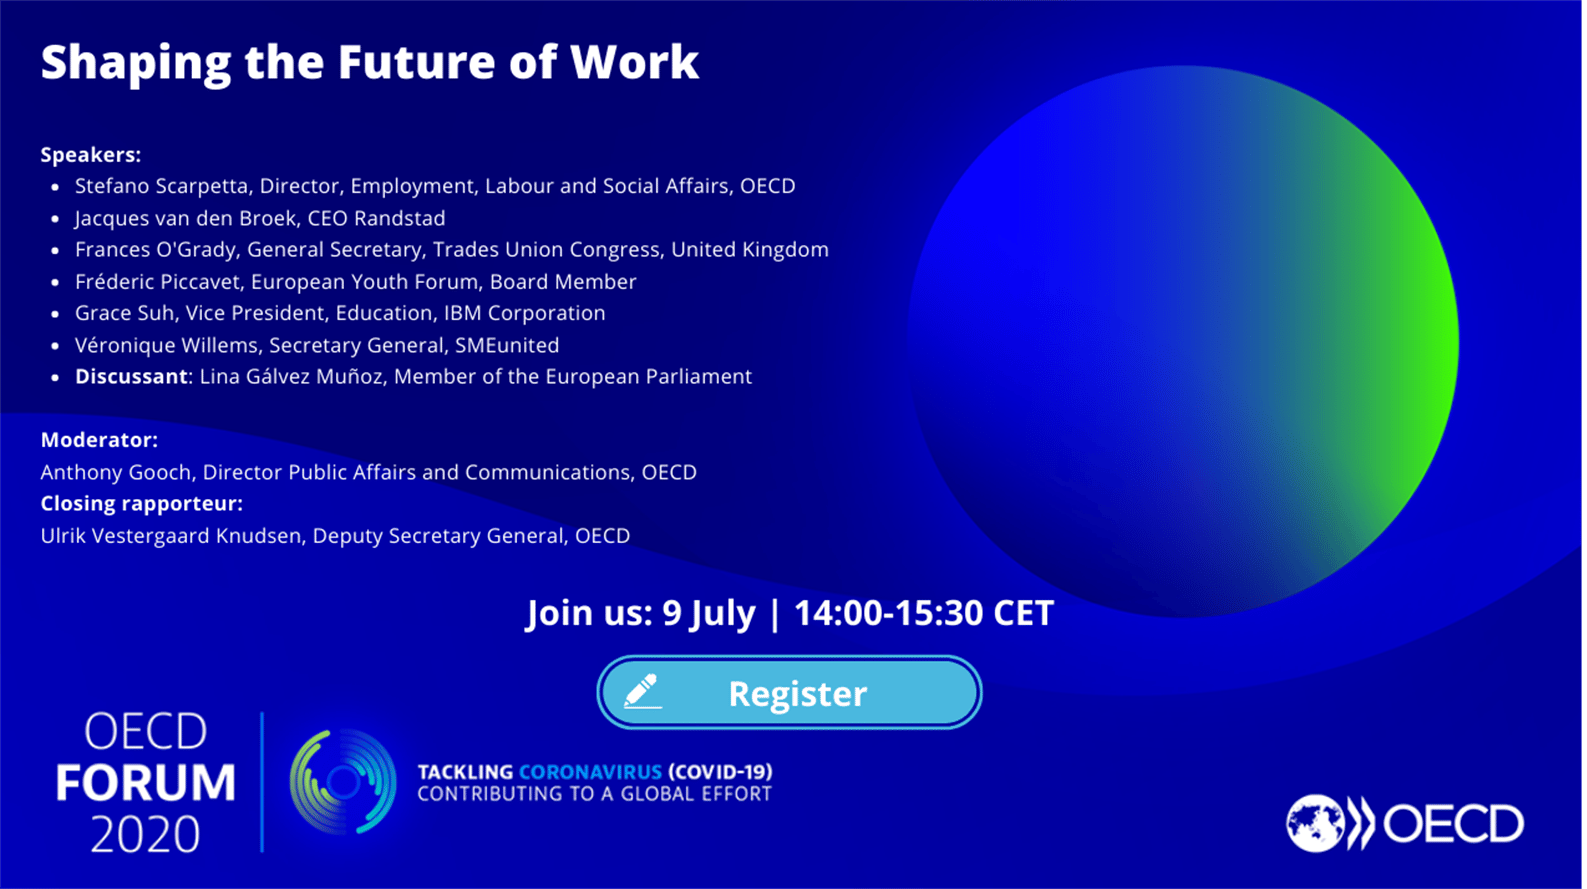 OECD Forum Virtual Event: Shaping the Future of Work -- this event has now ended and registration is closed, but you can continue the conversation in our dedicated Forum Network room!